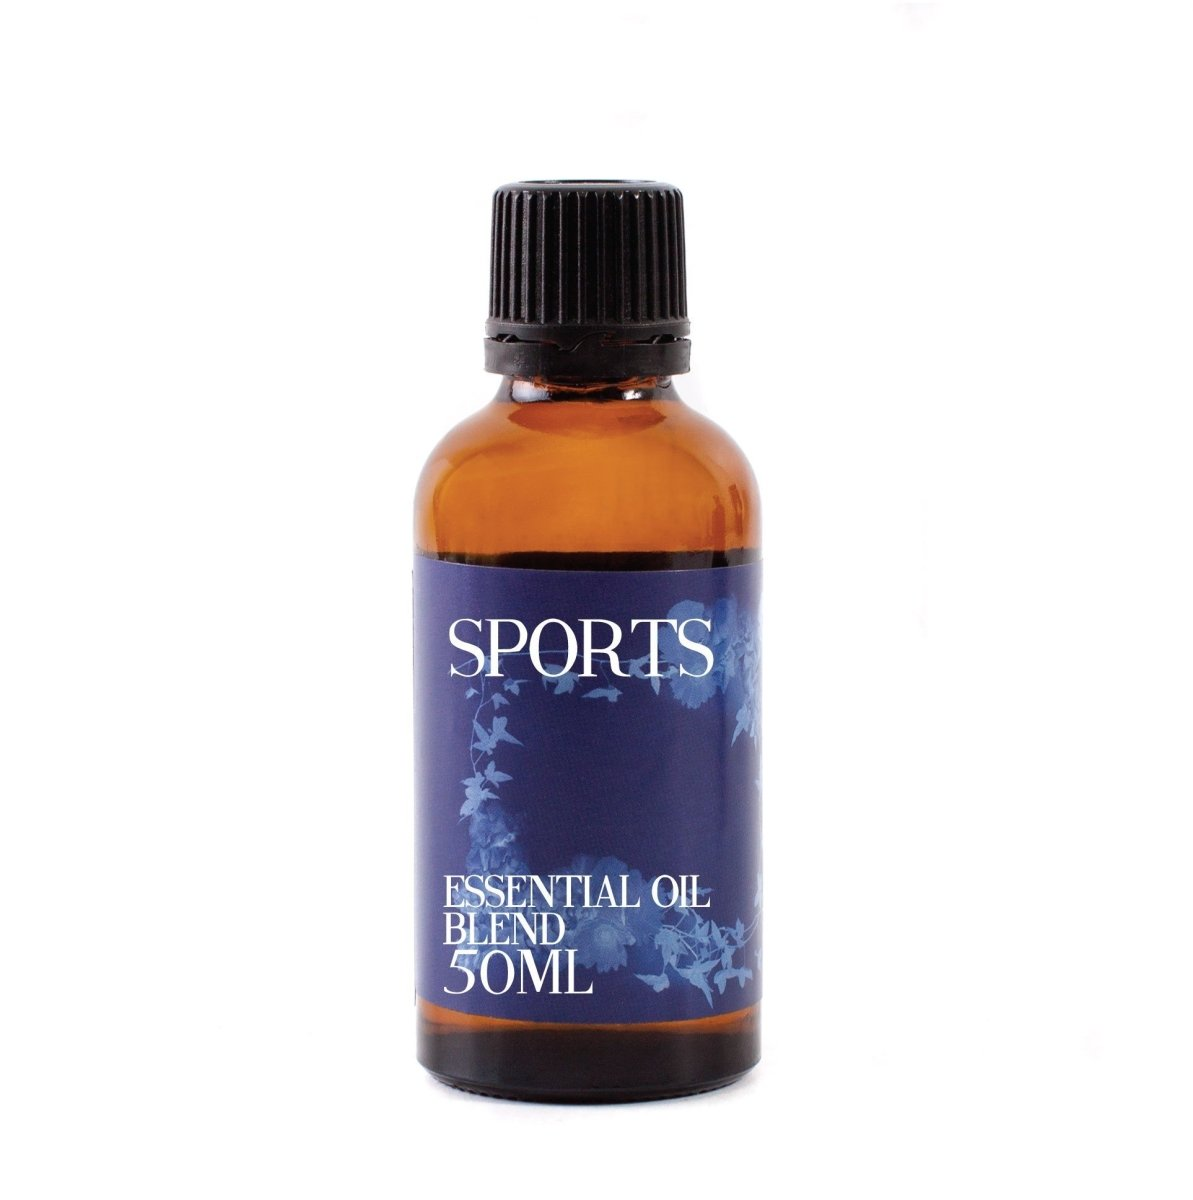 Sports - Essential Oil Blends - Mystic Moments UK